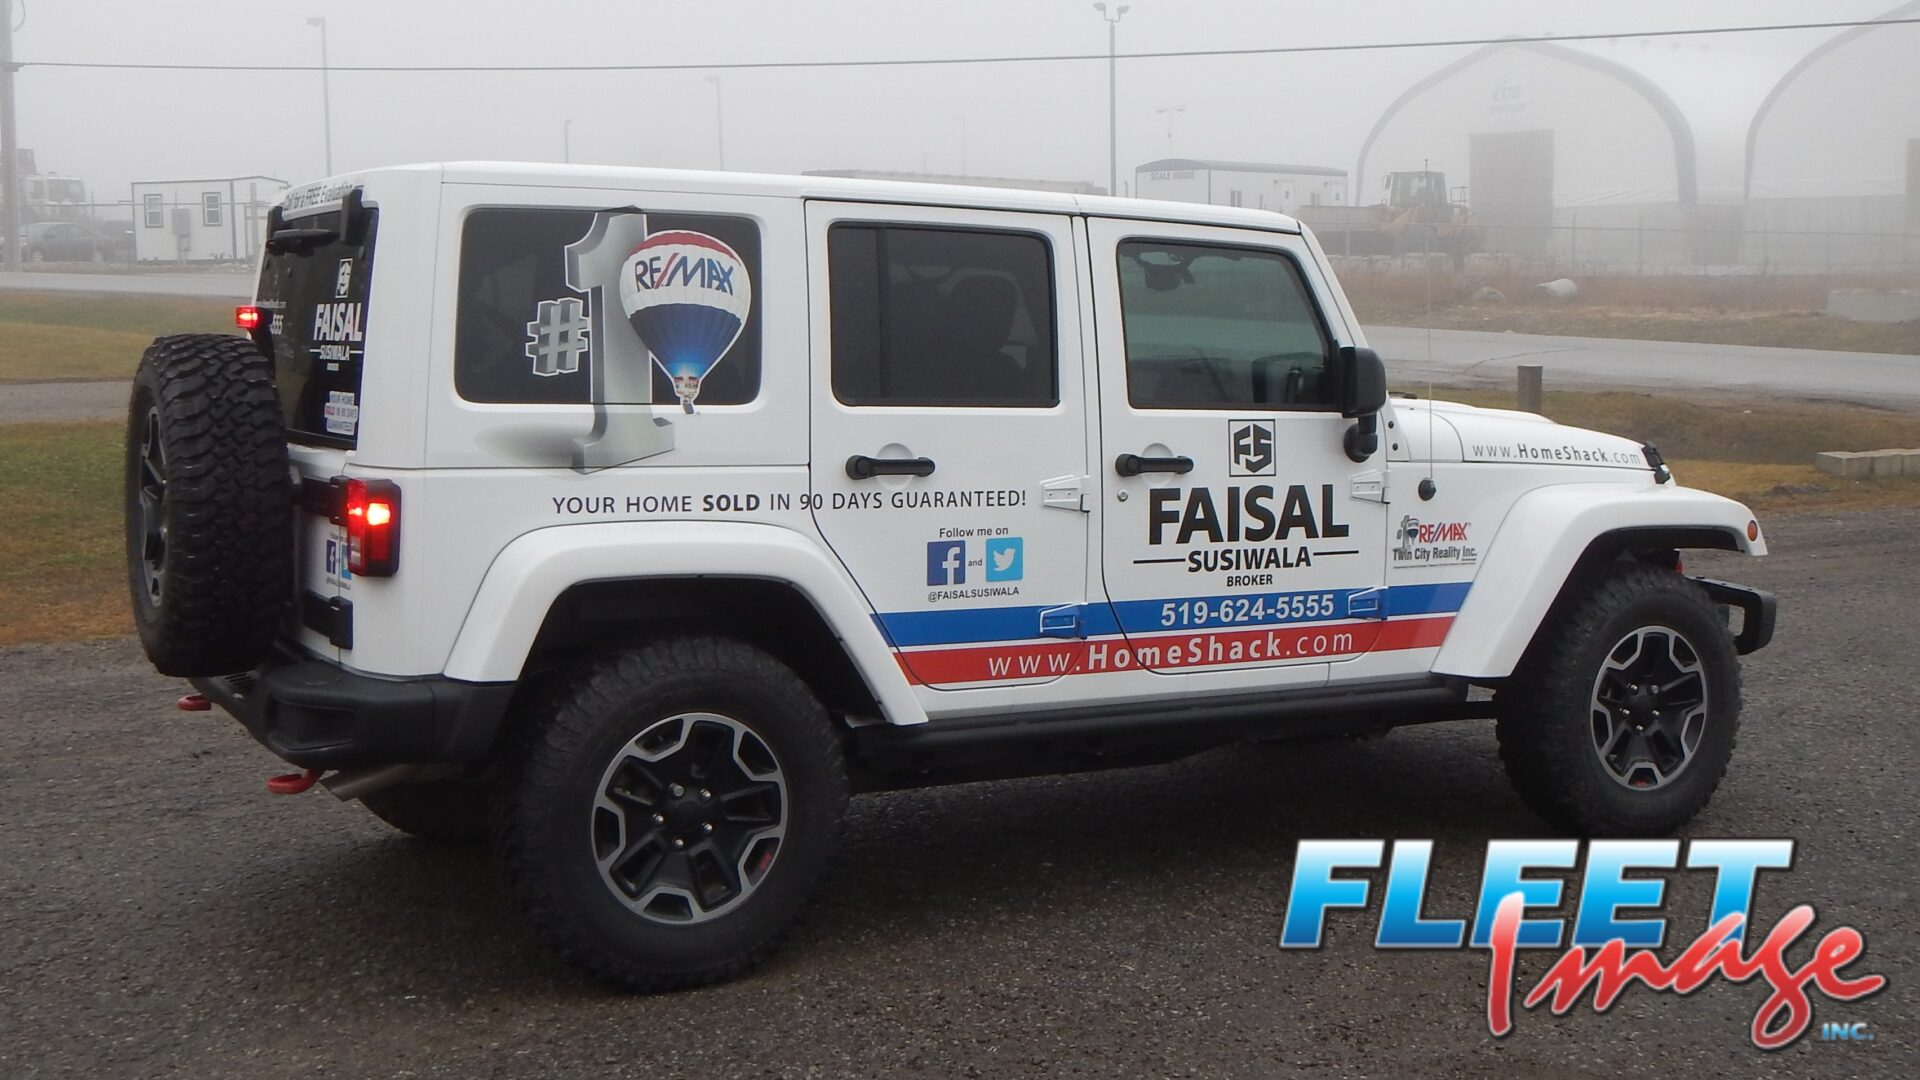 Vehicle with a FAISAL SUSIWALA BROKER decal sticker